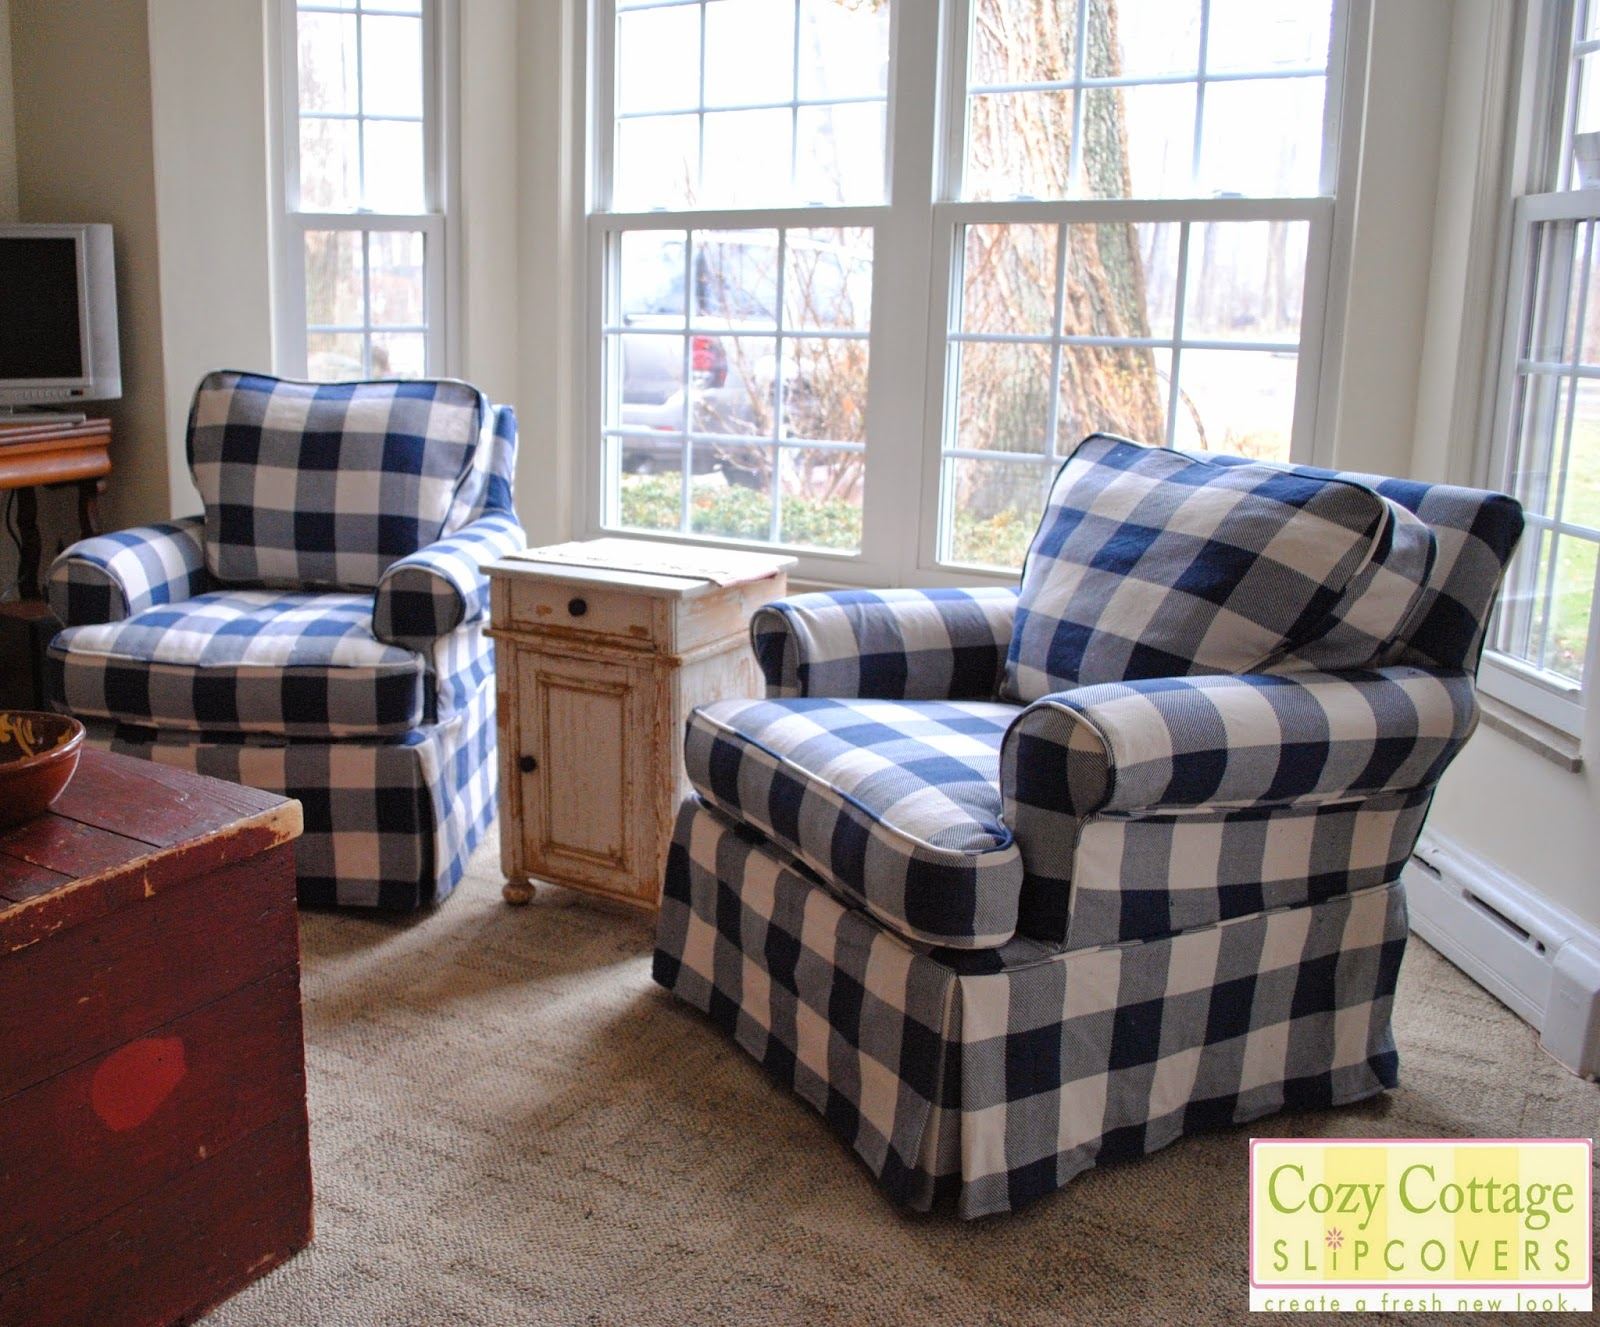 Cozy Cottage Slipcovers: Blue and White Buffalo Check ...